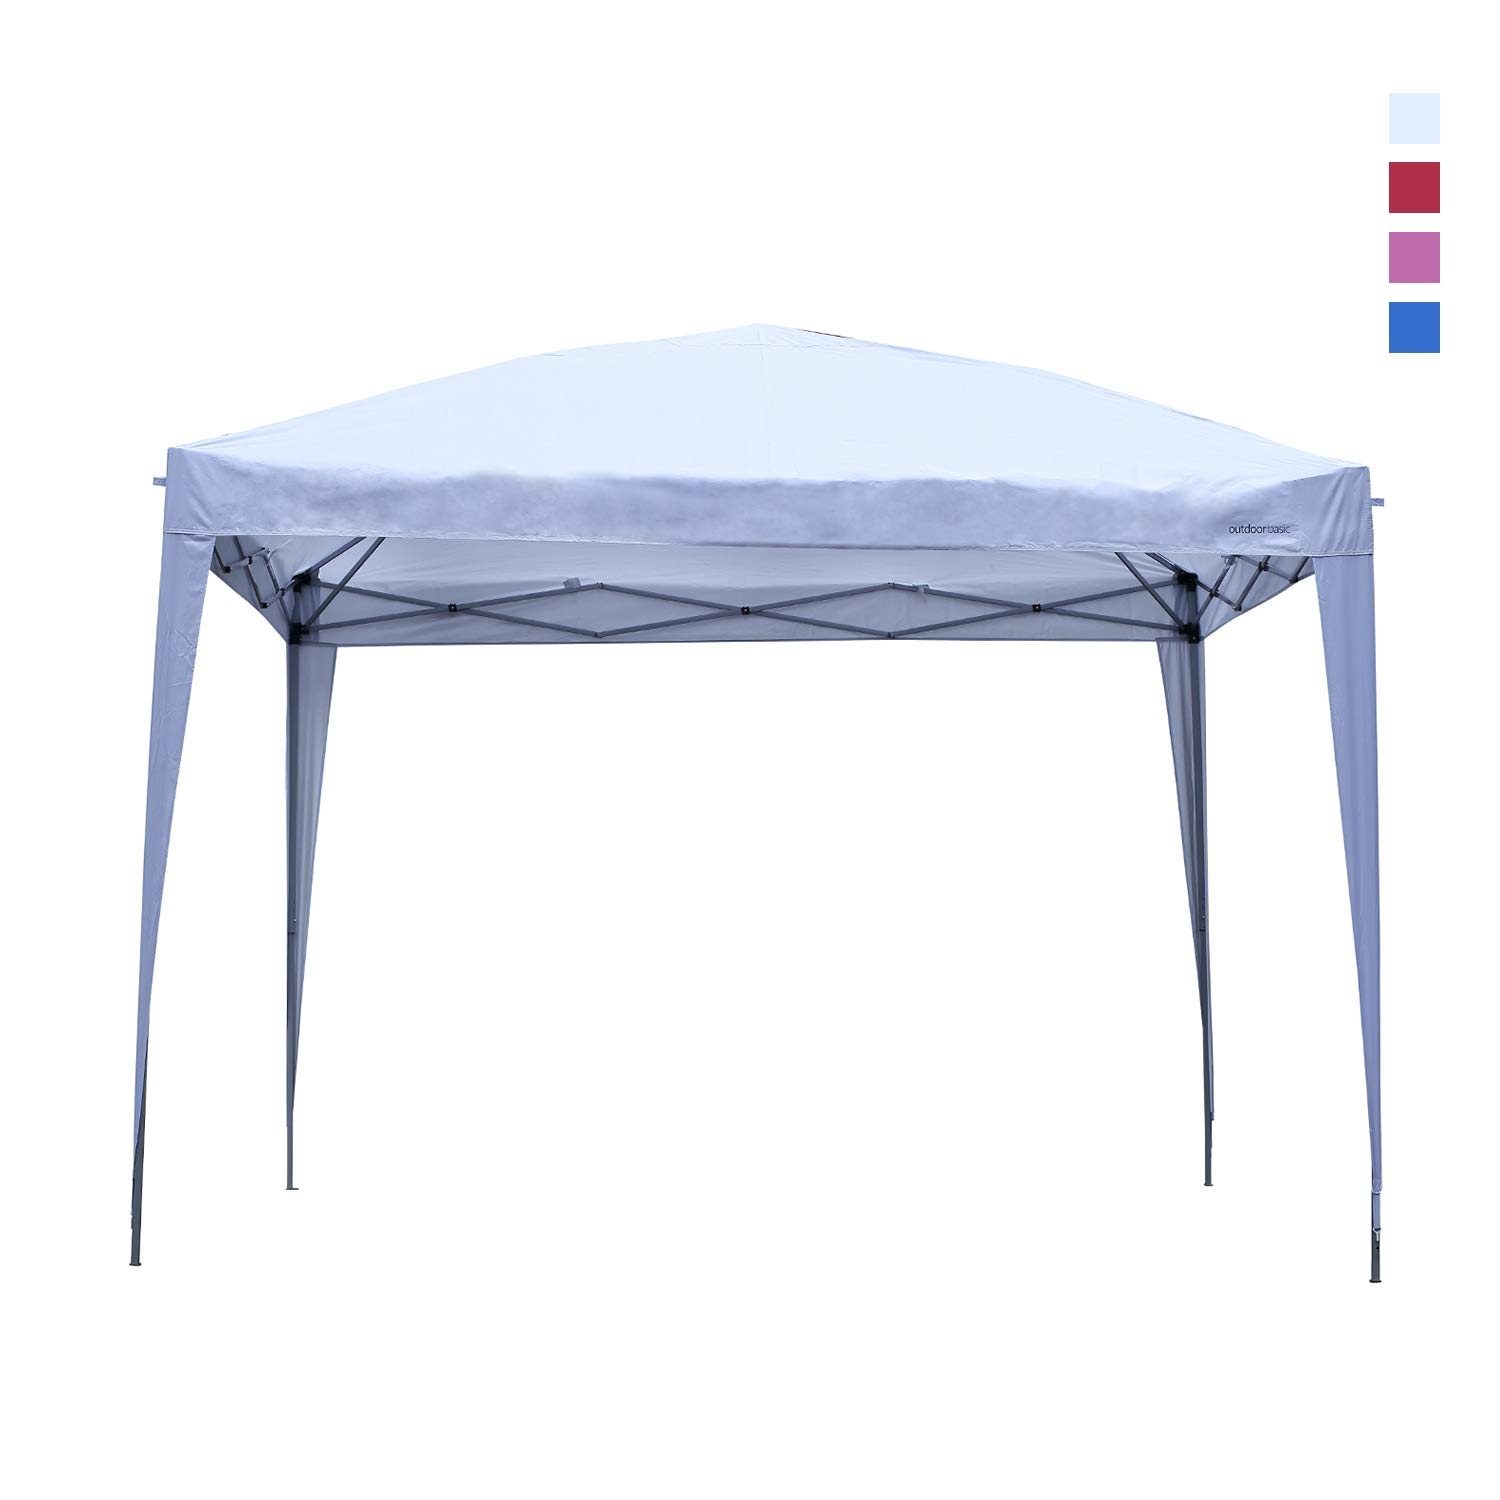 Leisurelife Waterproof 10'x10' Pop Up Wedding Tent with Side-Outdoor Folding Commercial Gazebo Canpy Tent White